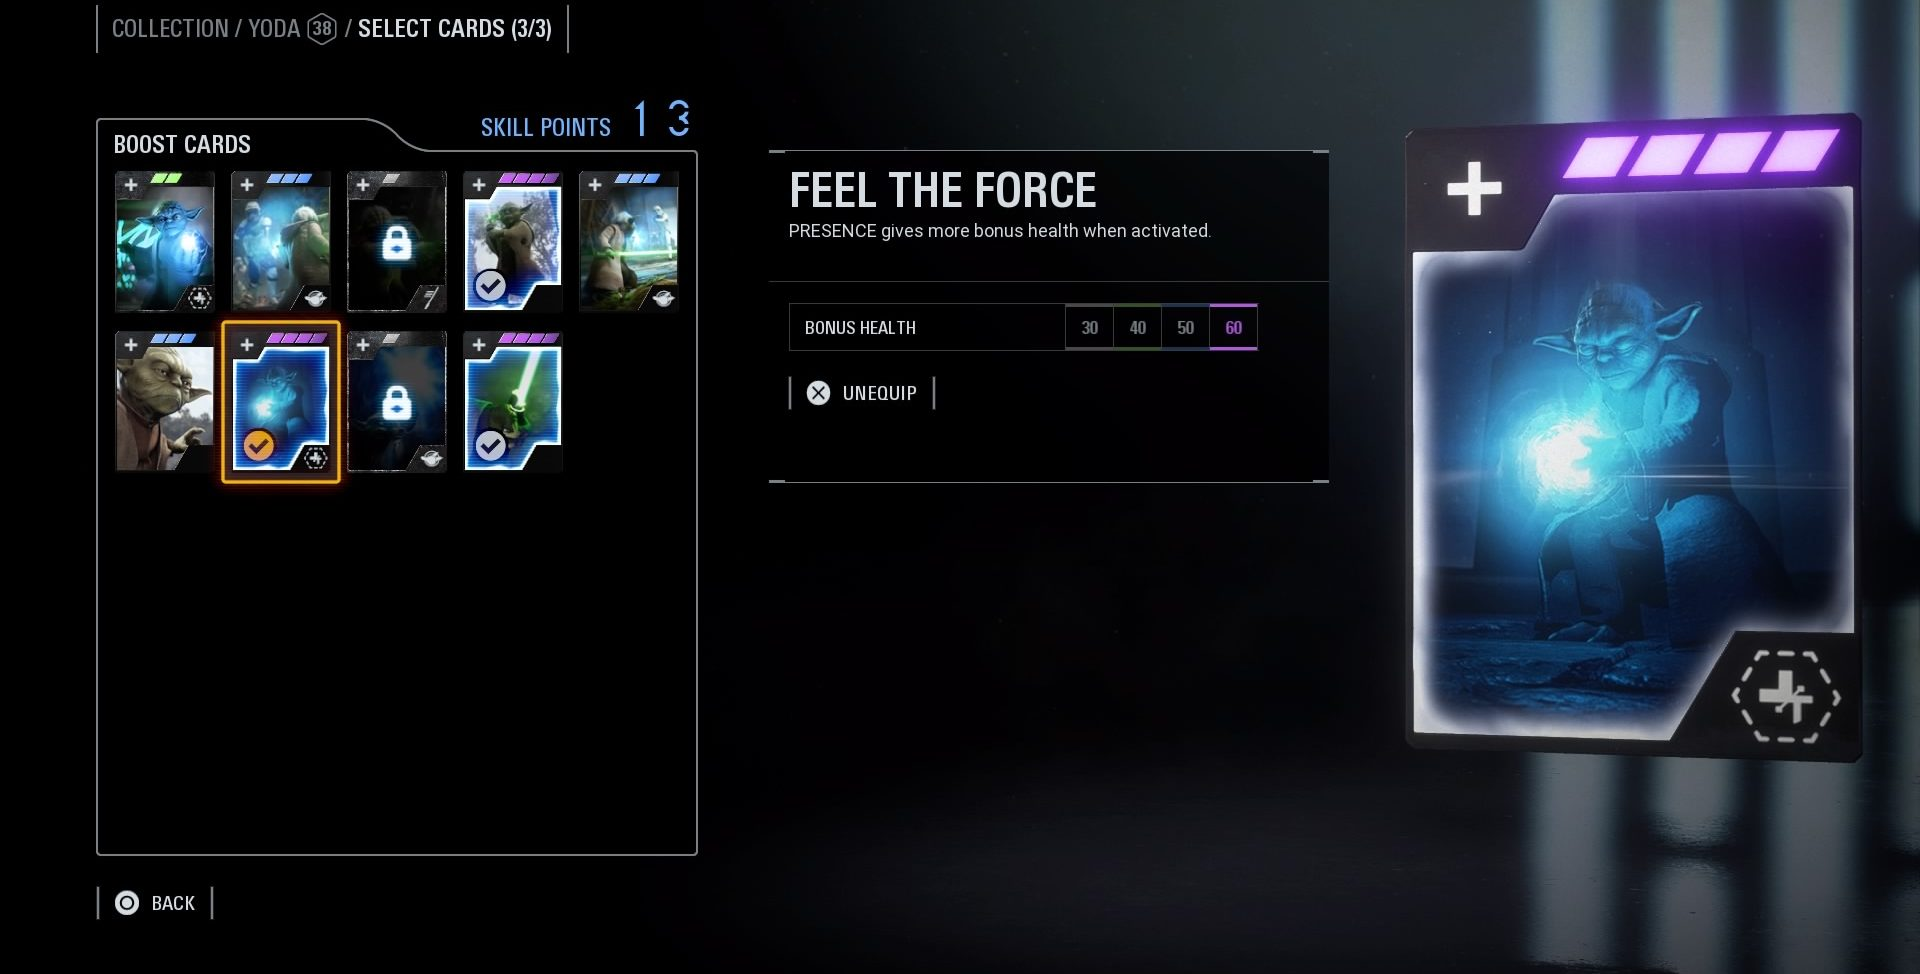 New Star Wars Battlefront 2 Star Cards Being Added This Month